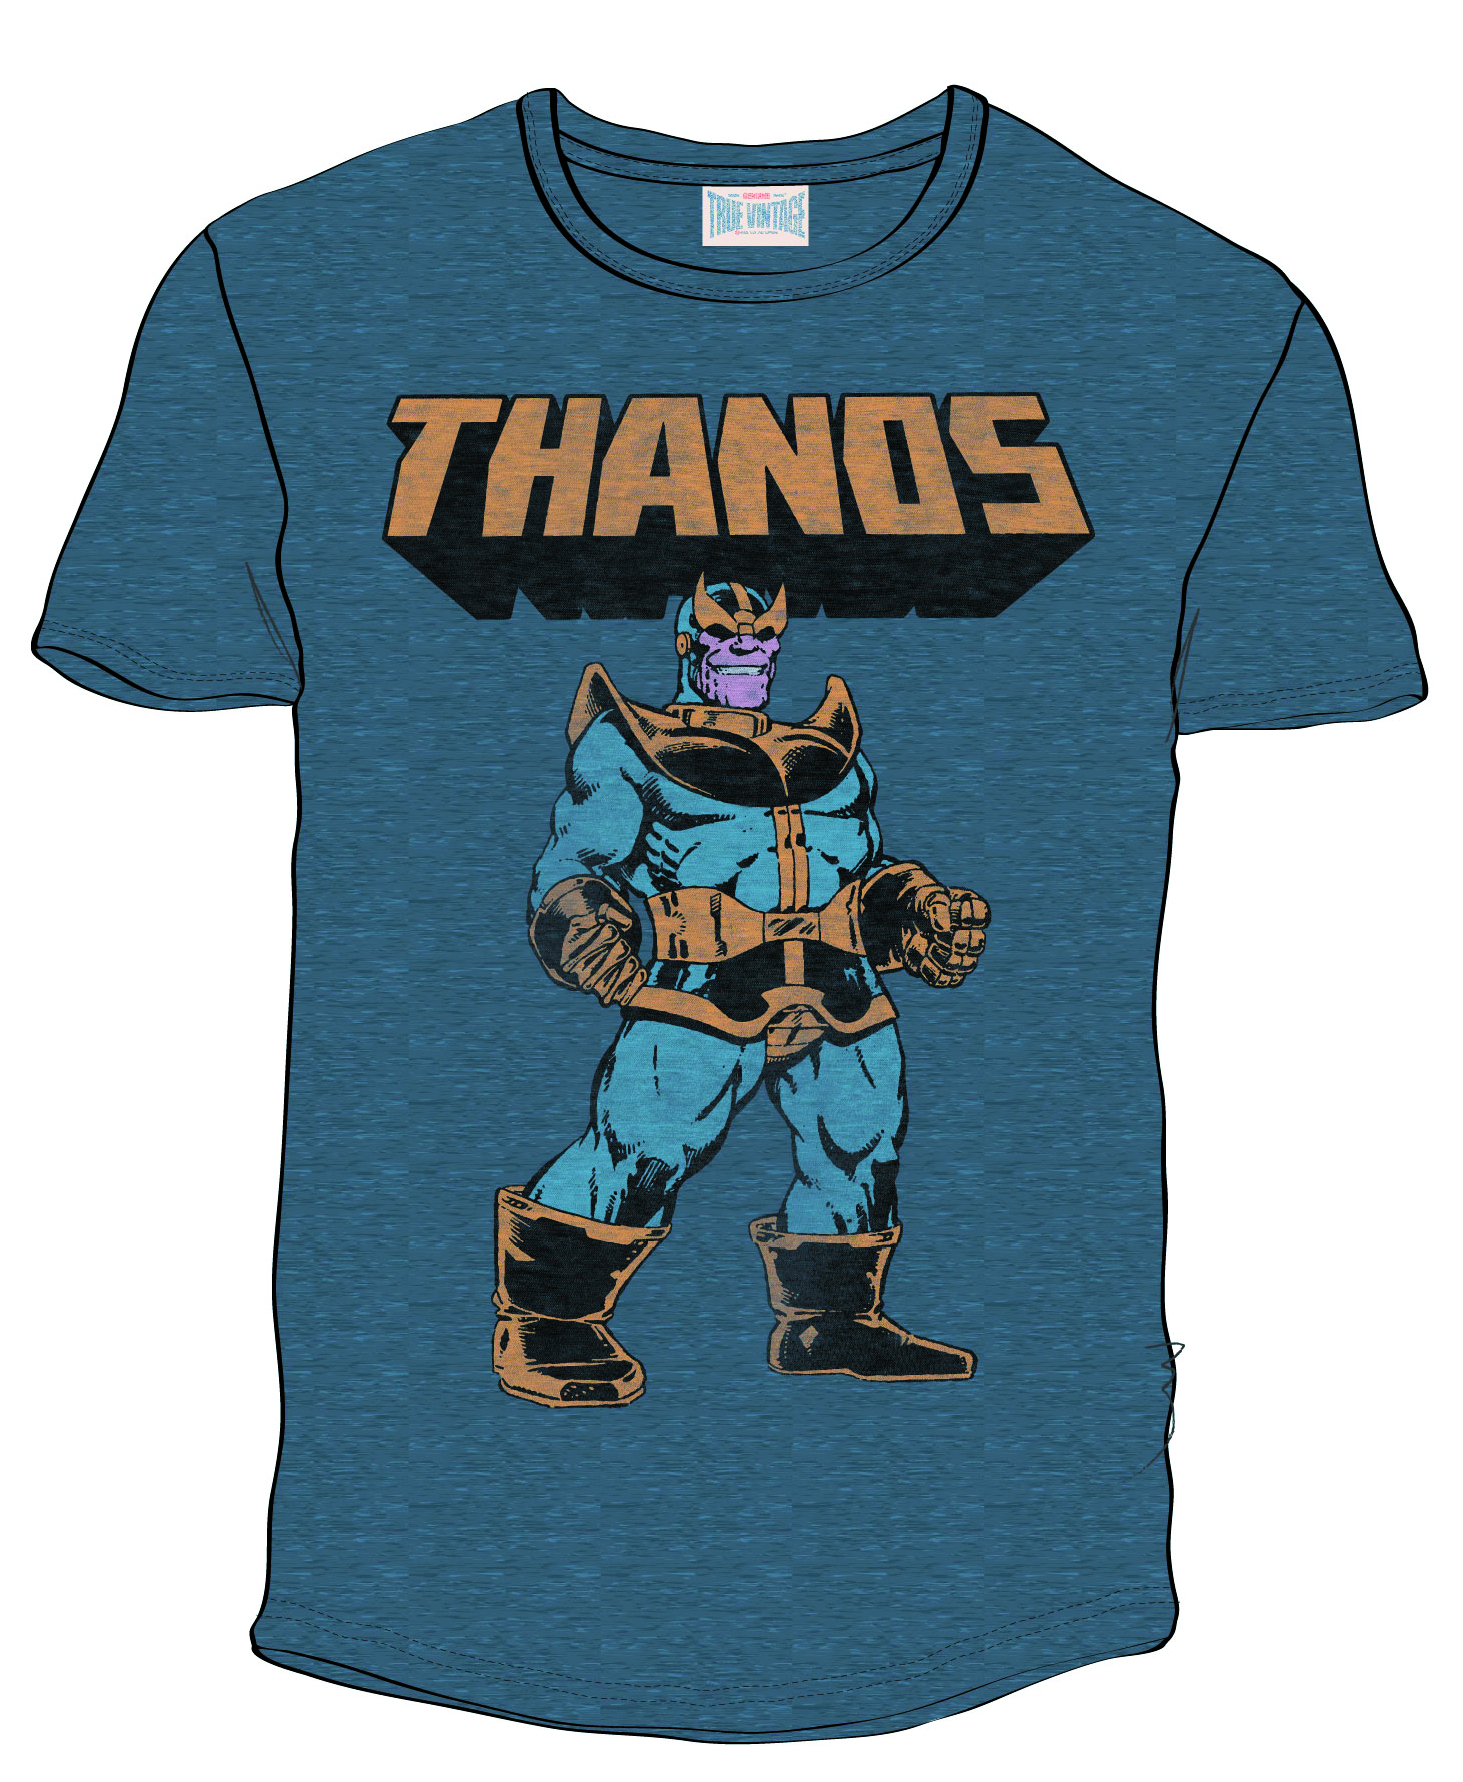 THANOS NAVY PX BLK HEATHER T/S XL